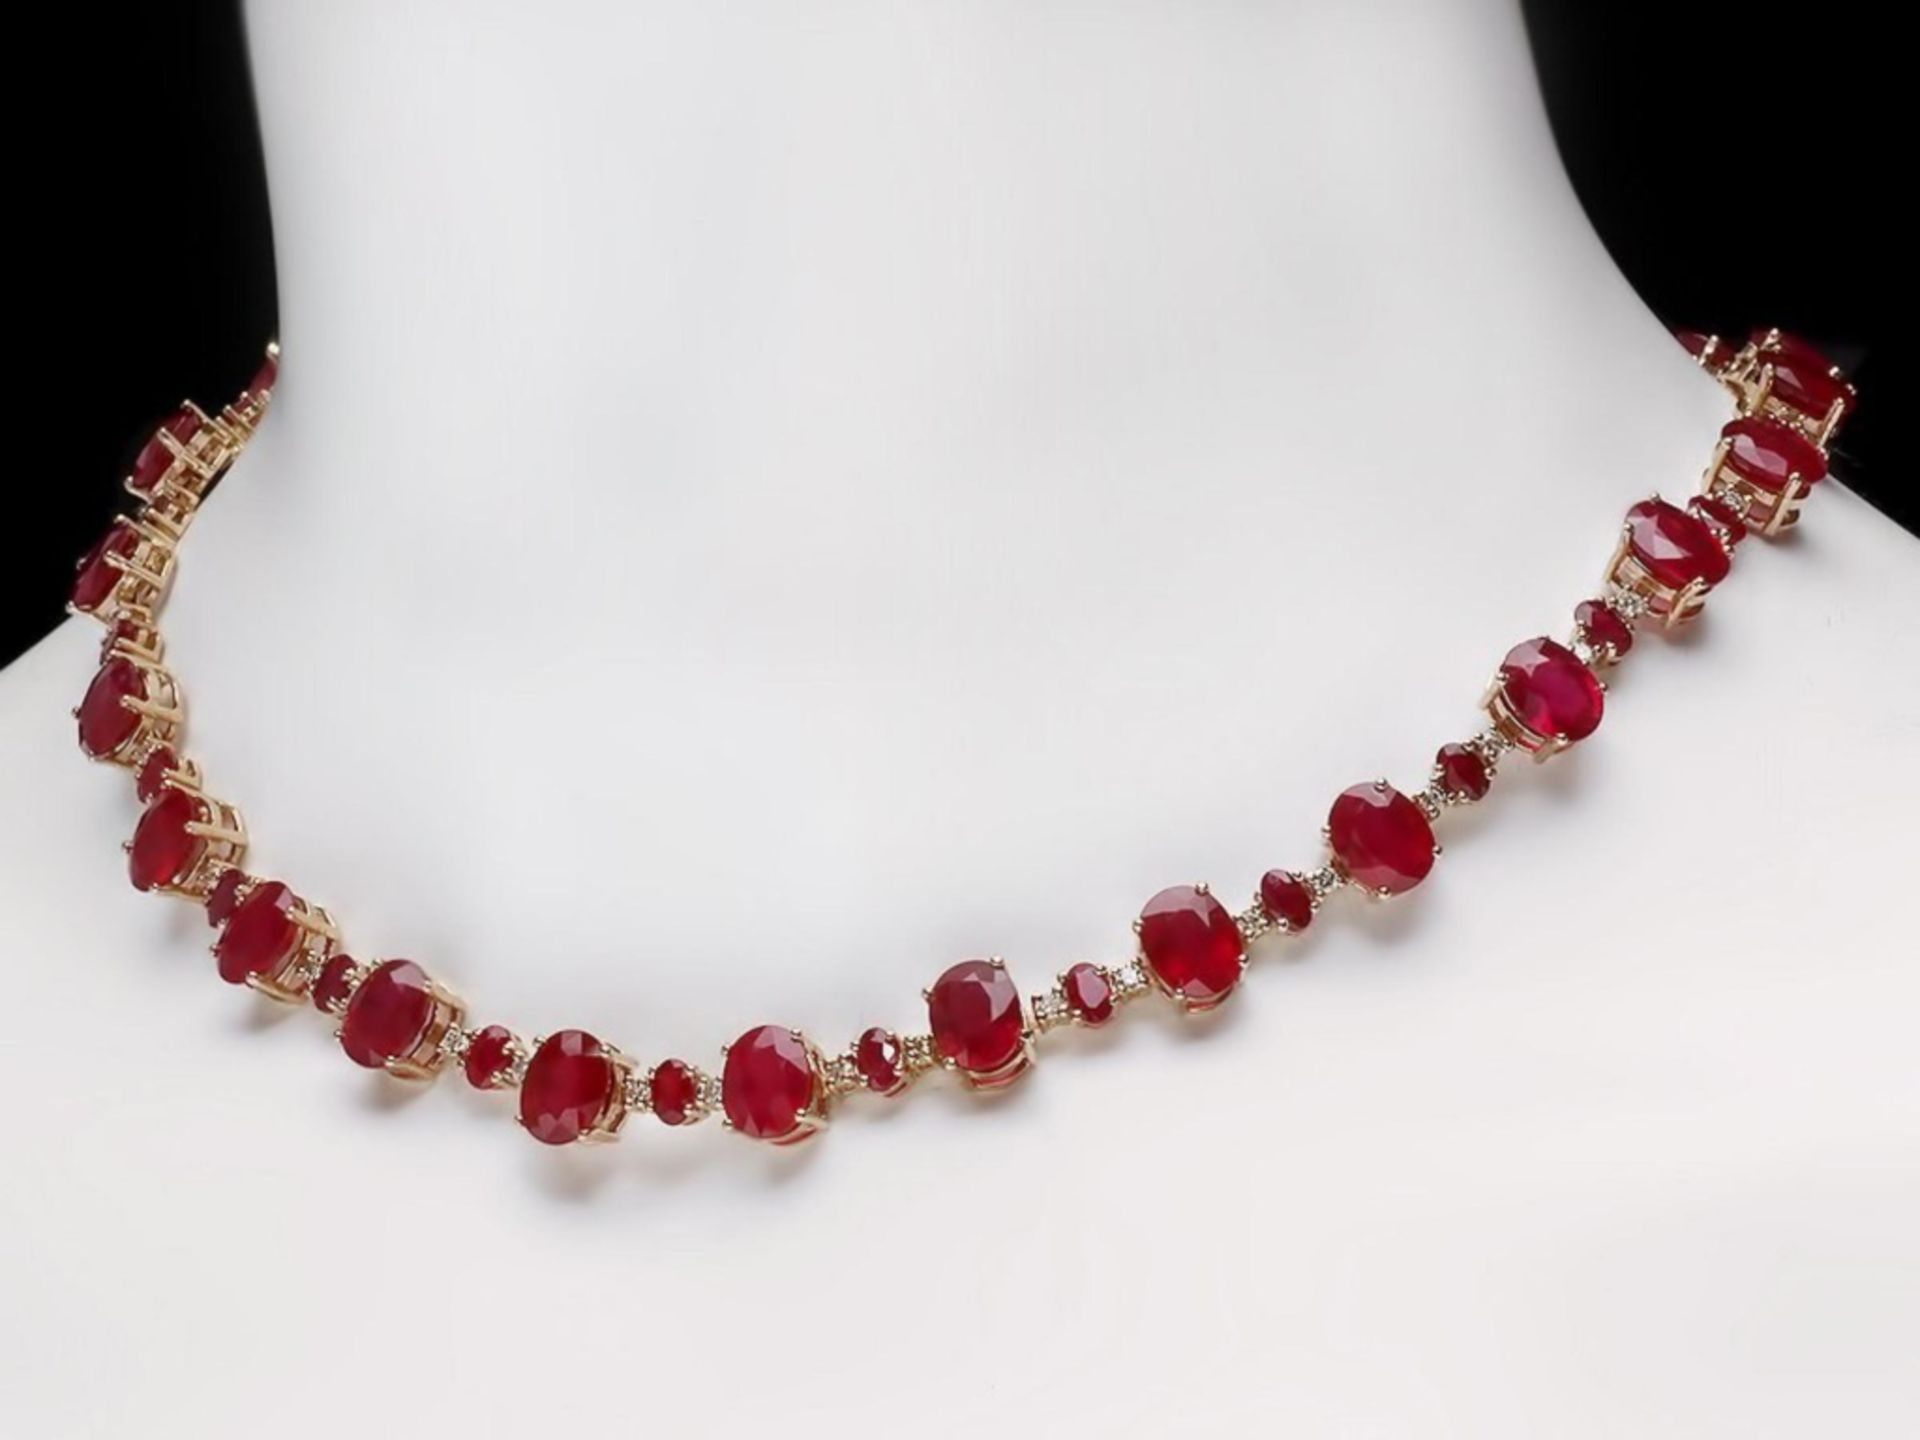 `14k Gold 54.00ct Ruby & 2.00ct Diamond Necklace - Image 4 of 5